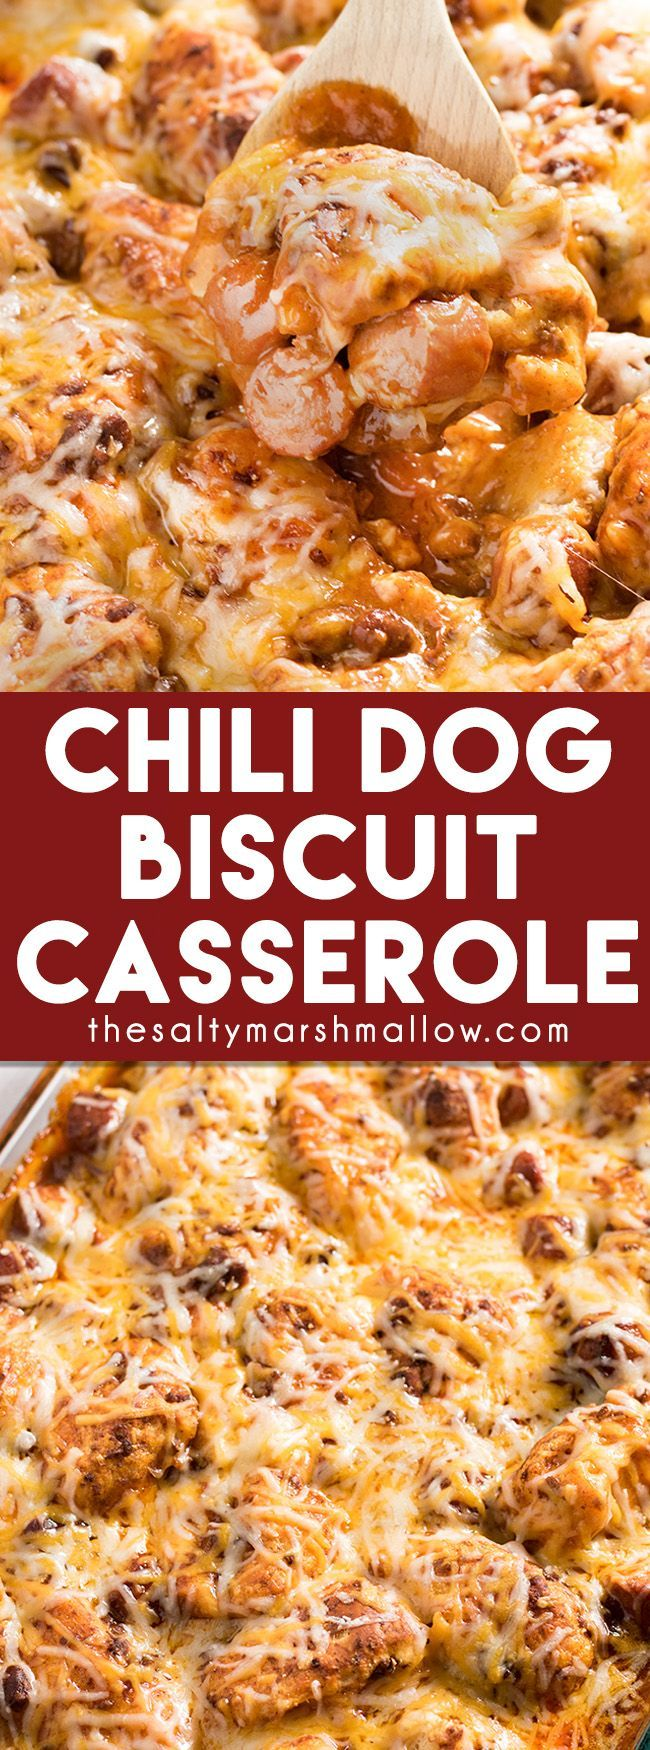 Chili Dog Biscuit Casserole: This Chili Dog Casserole is a quick and easy weeknight dinner recipe filled with biscuits, chili, hot dogs, and cheese! A delicious comfort food dinner recipe that is perfect for the whole family. This is an exclusive limited edition engraving only sold